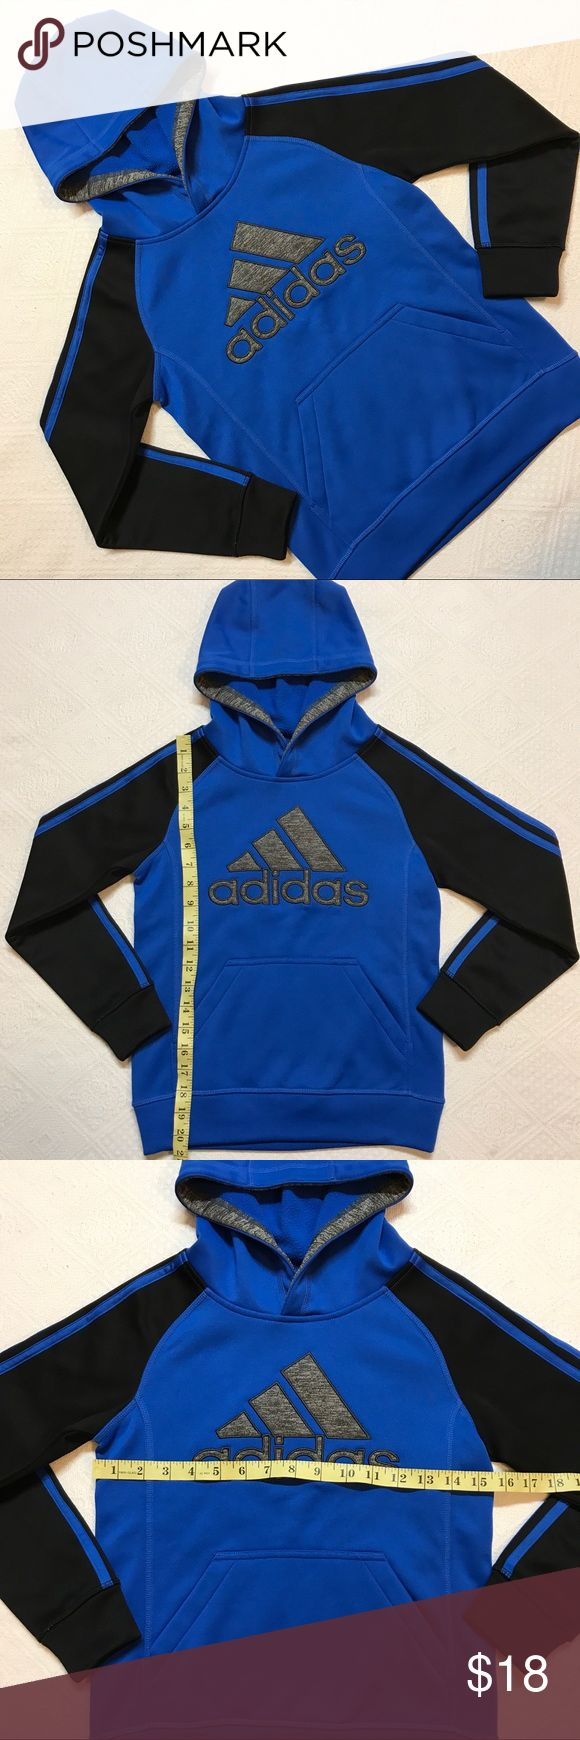 Boy's Adidas hoodie size small size 8 blue black S Adidas Logo athletic style hoodie, size small or 8 in boy's, but could certainly be unisex. Great condition, no flaws! adidas Shirts & Tops Sweatshirts & Hoodies